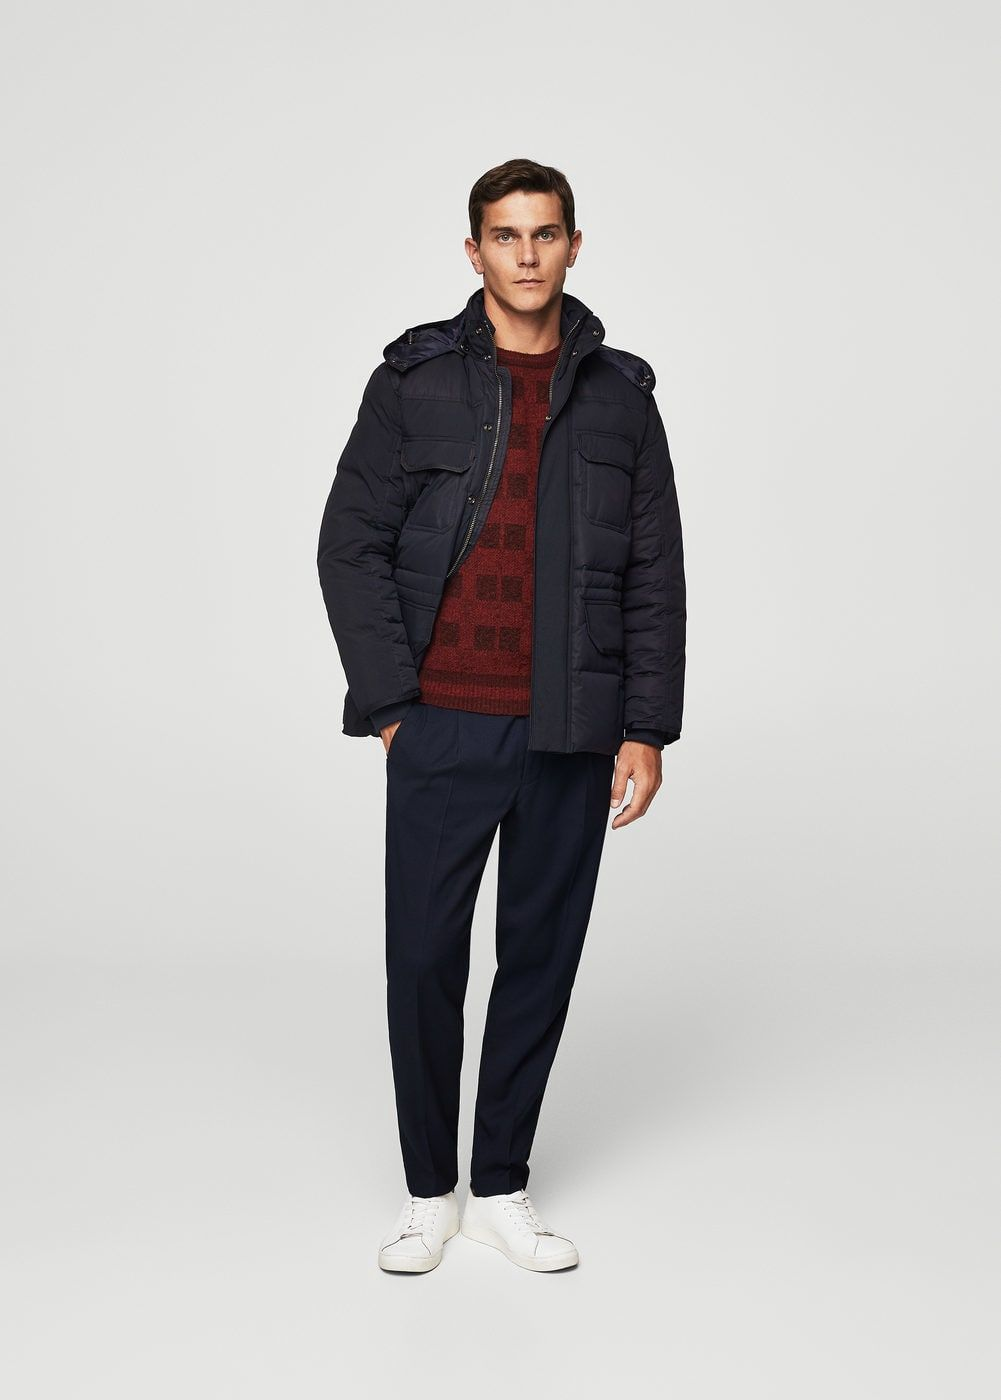 Anorak capucha plumón - Hombre | MNG Man Colombia